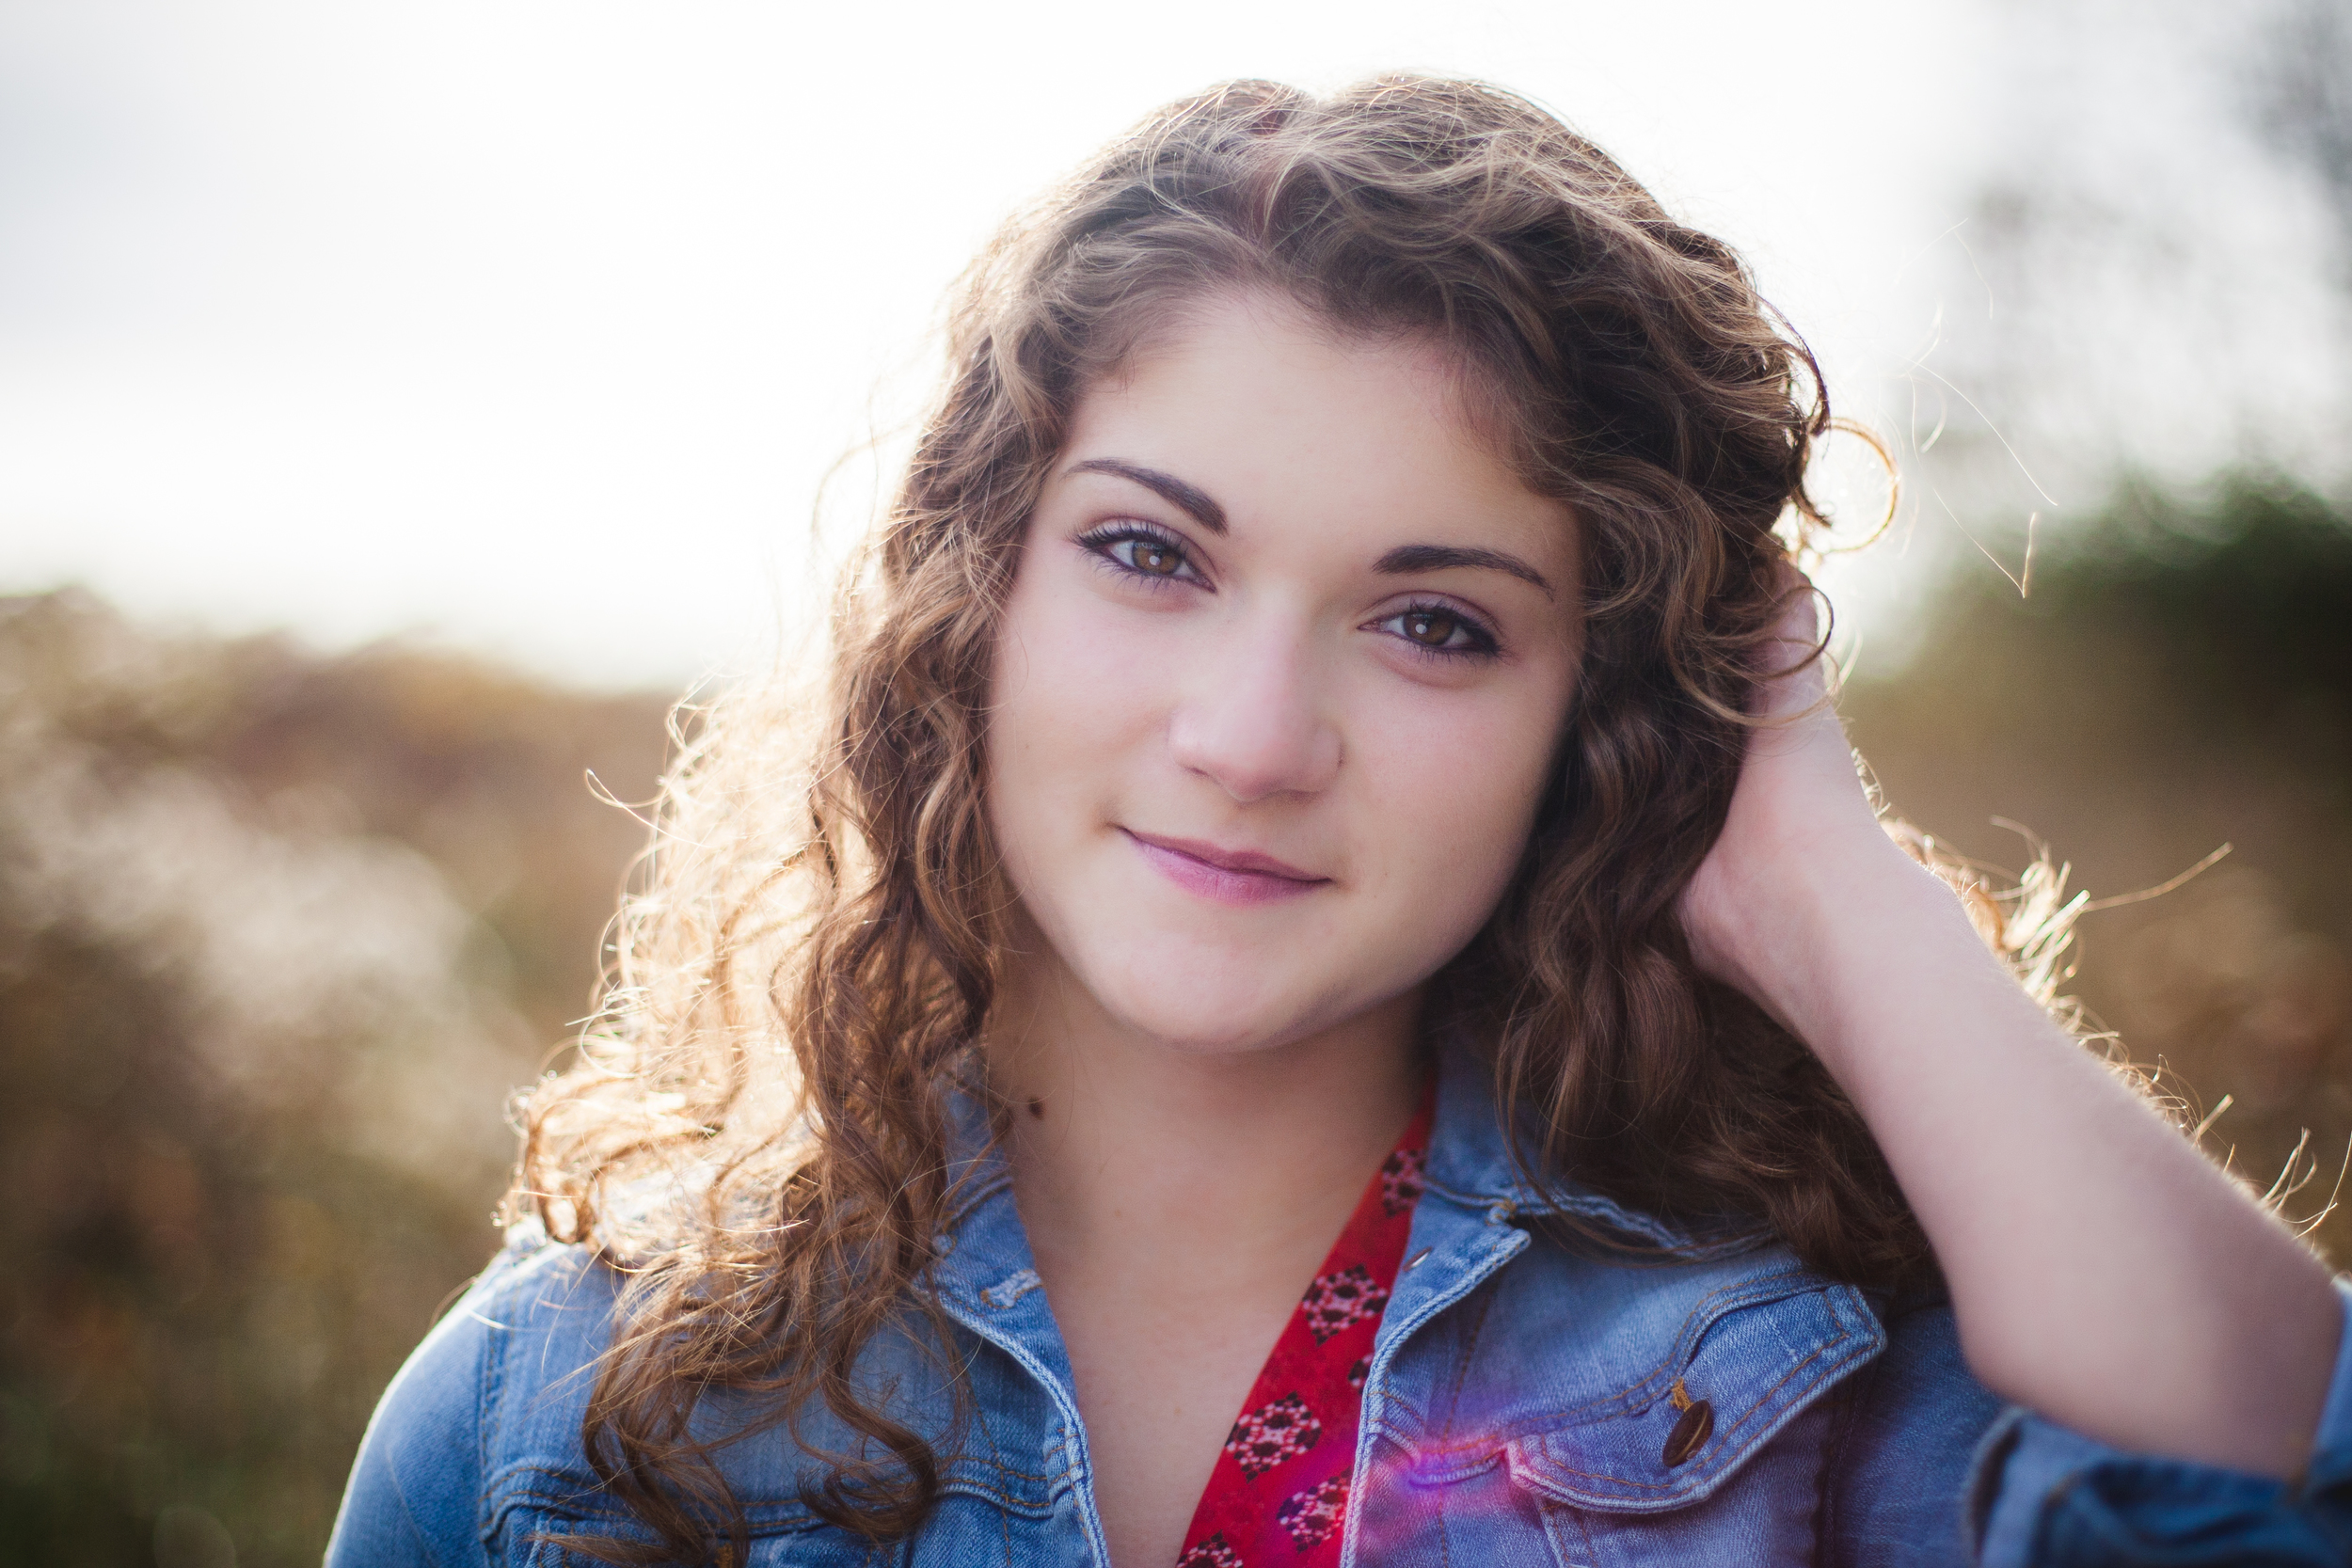 abby_senior_photos-48.jpg